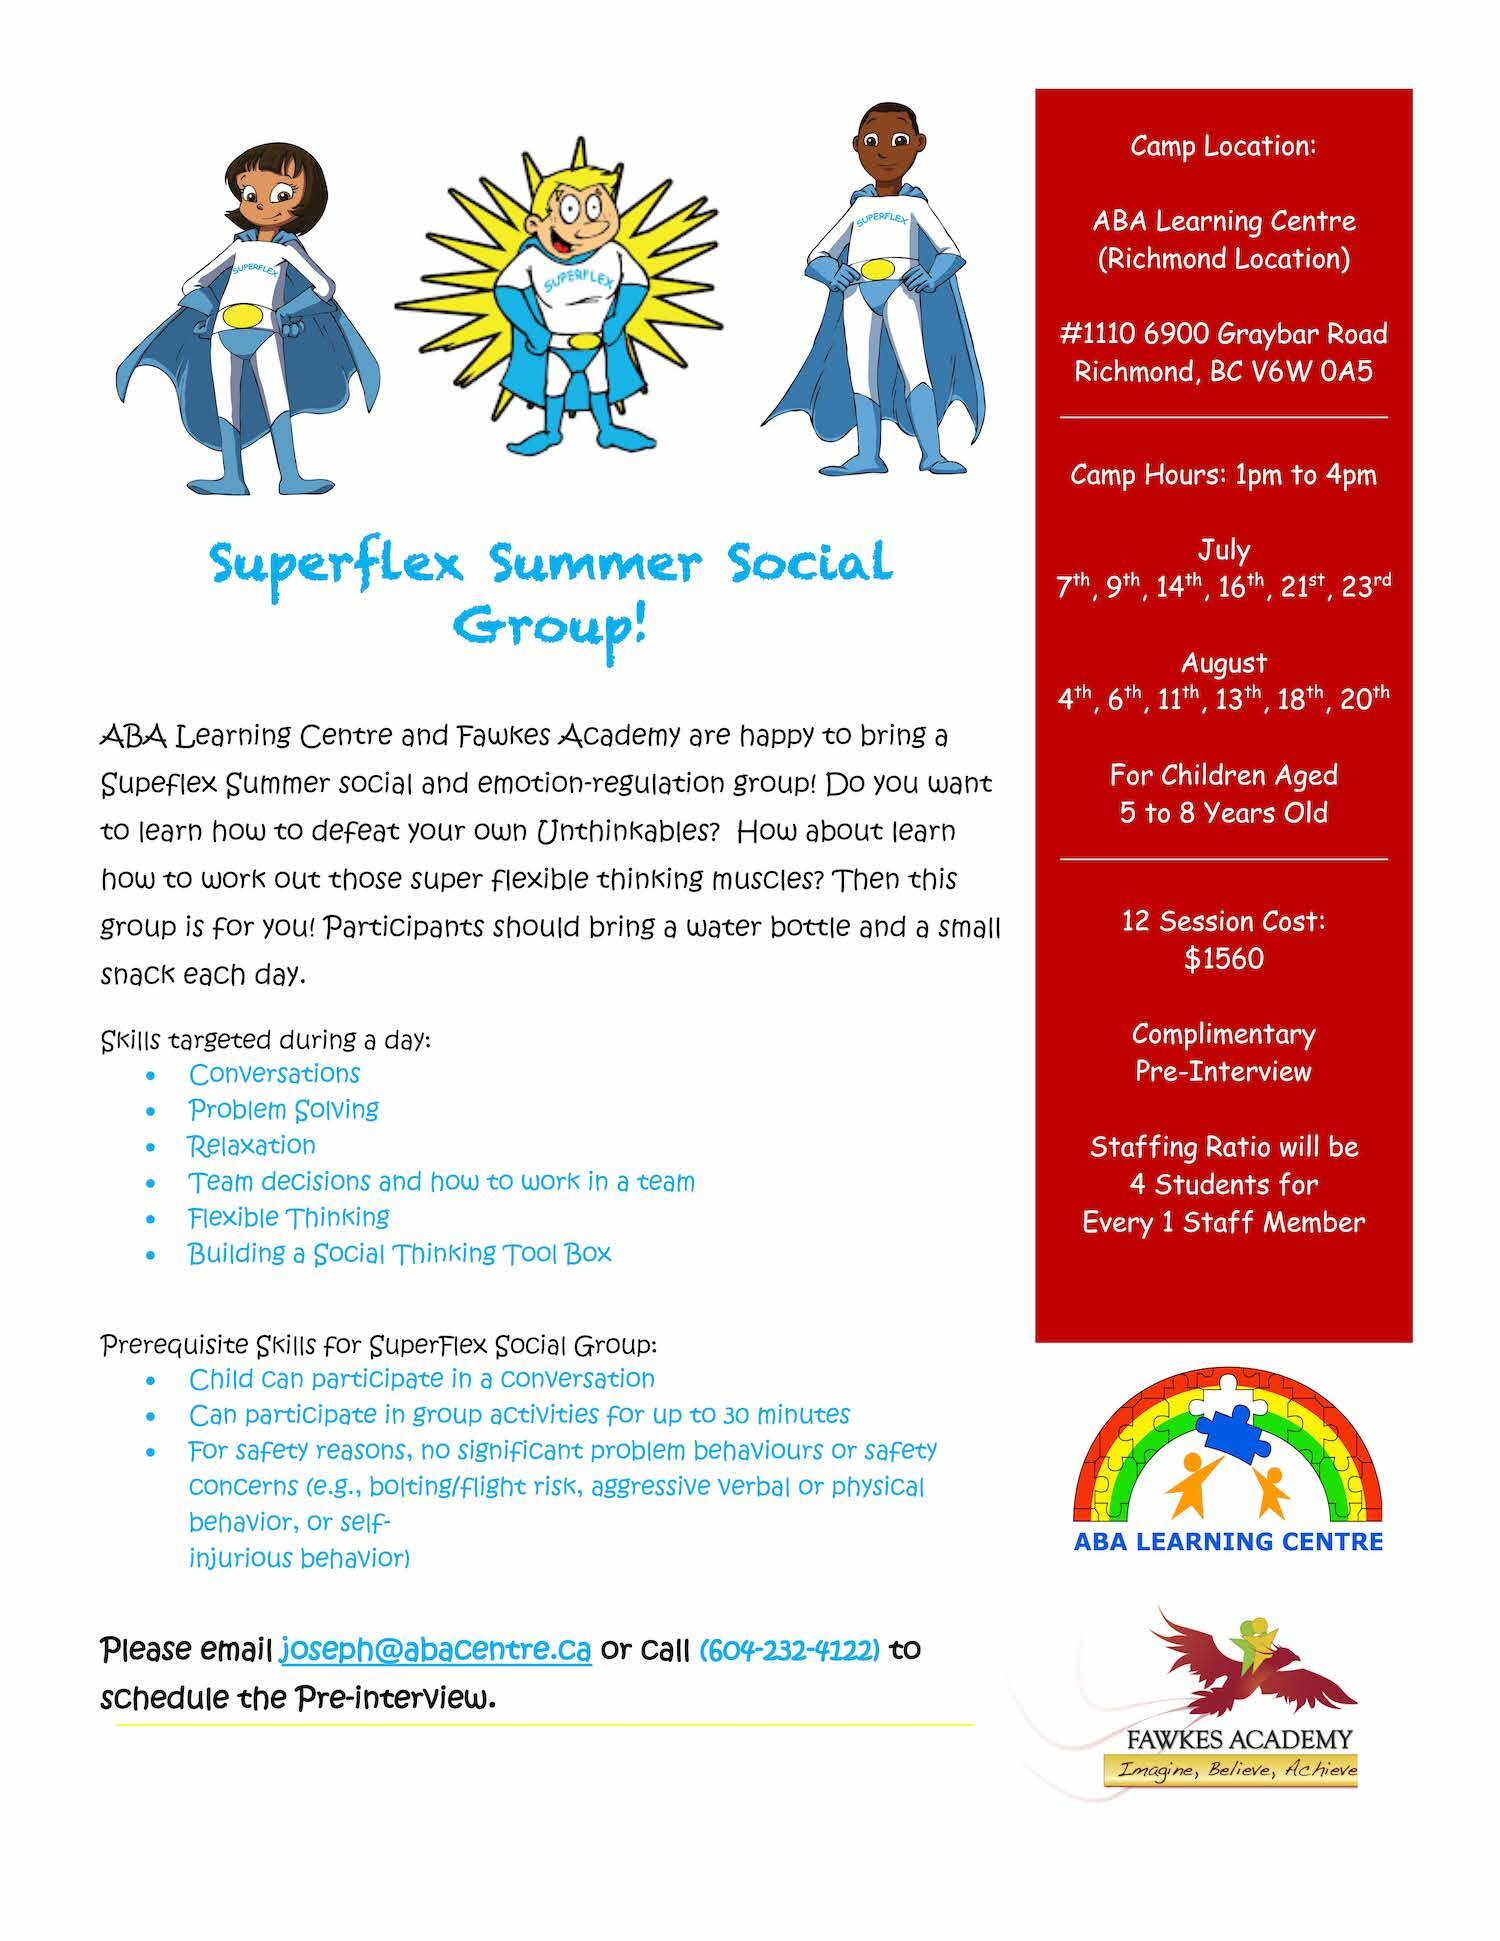 Superflex - Summer Social Skills Group